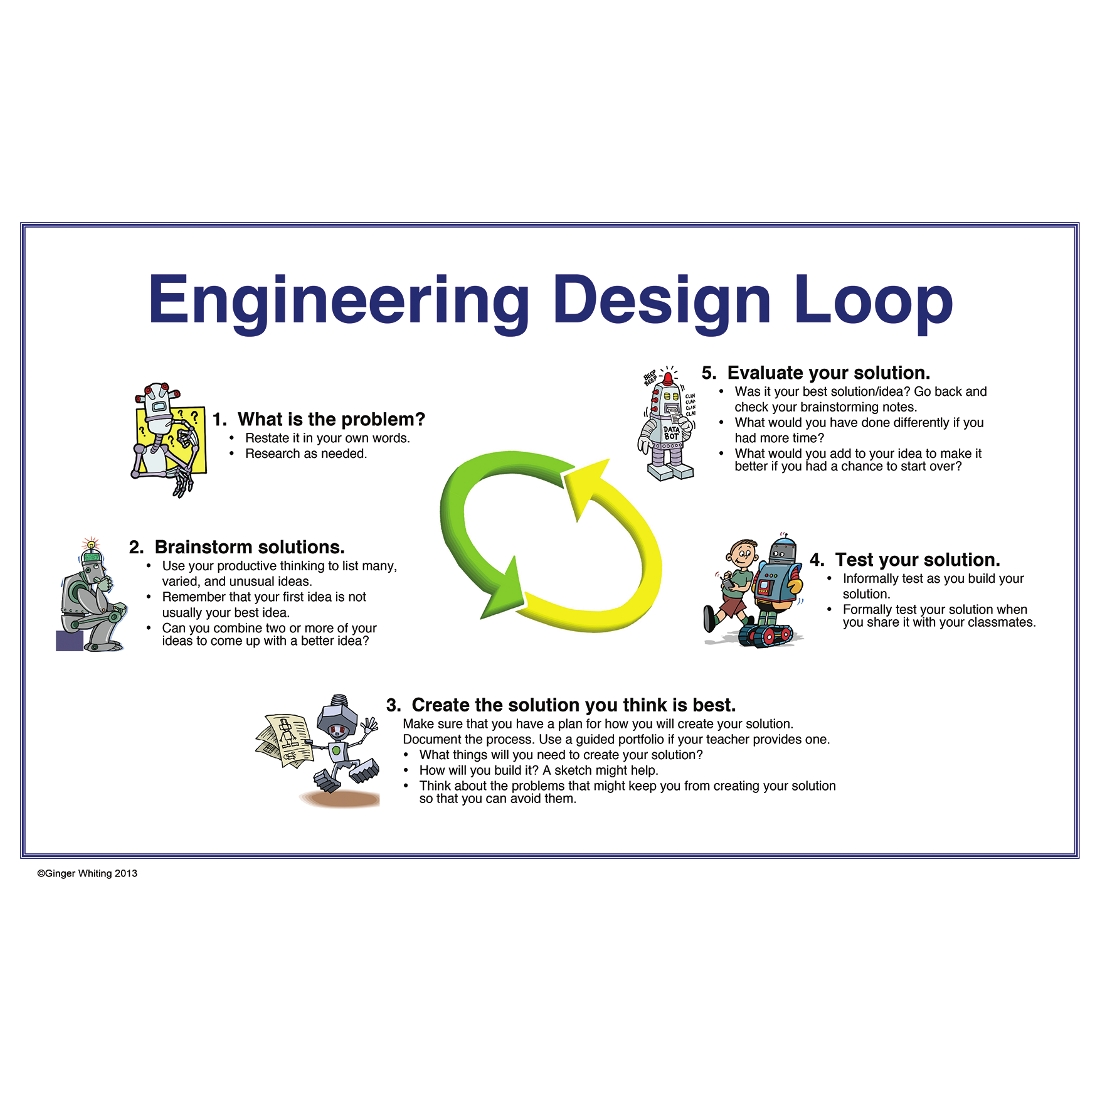 Stem School Loop: Intermediate Engineering Design Loop Poster